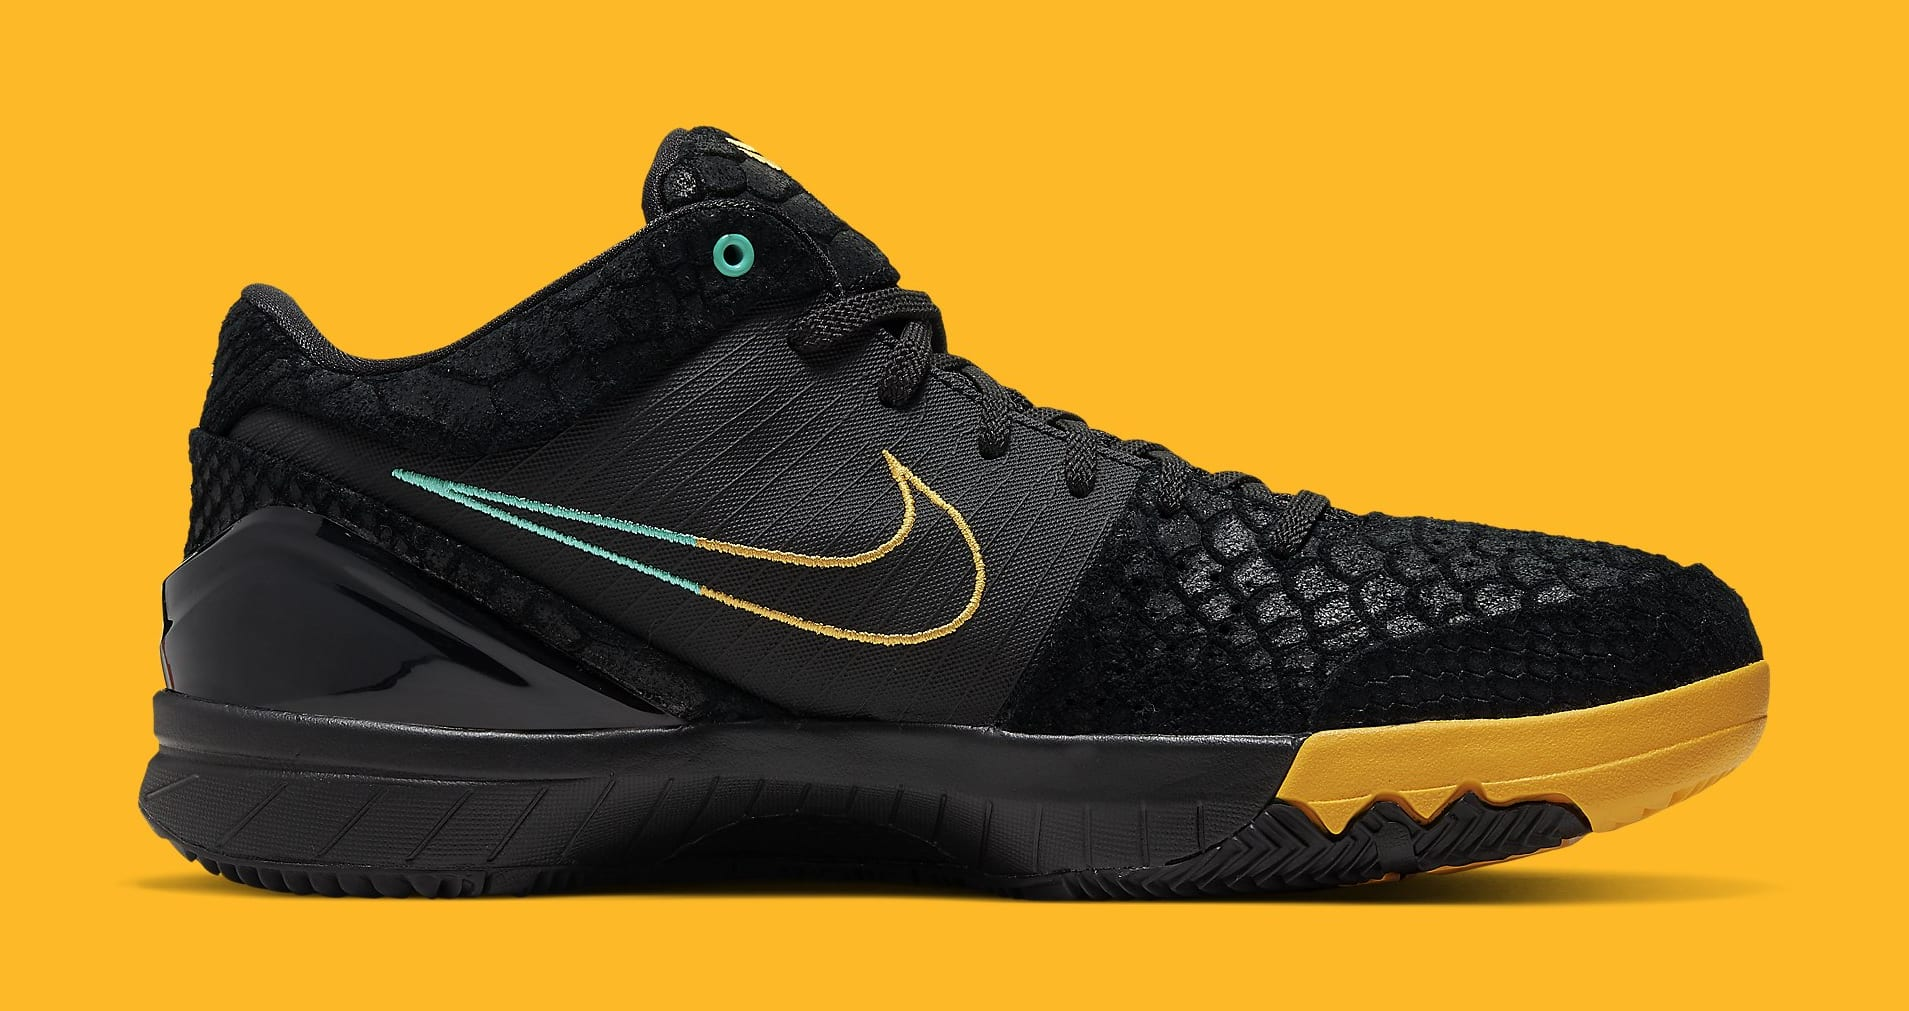 nike-zoom-kobe-4-iv-protro-black-aurora-green-university-gold-av6339-002-medial